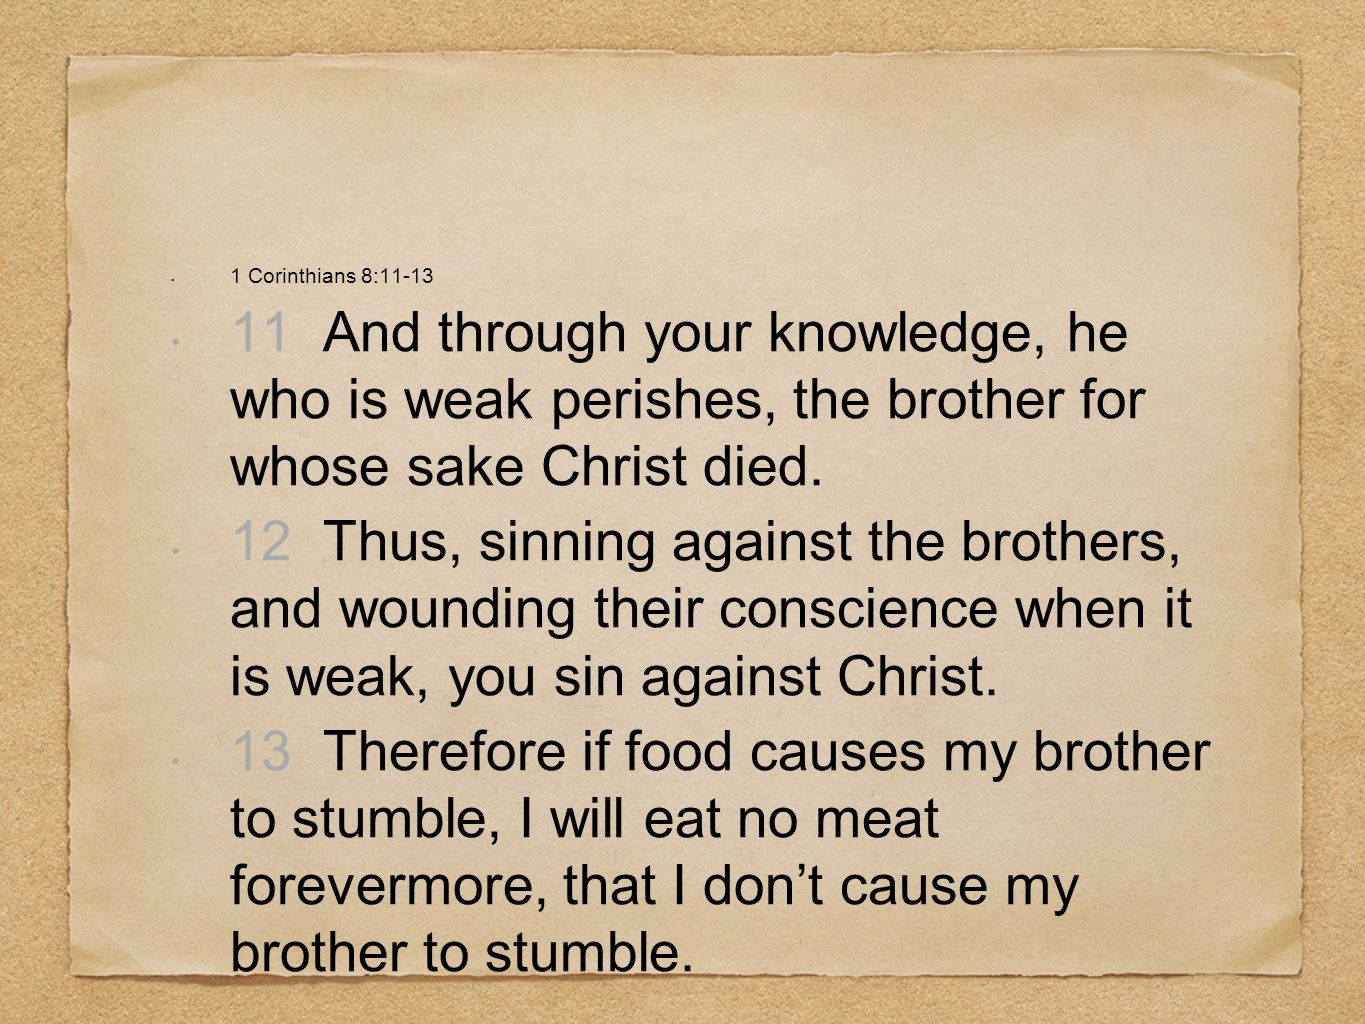 1 Corinthians 8: And through your knowledge, he who is weak perishes, the brother for whose sake Christ died.